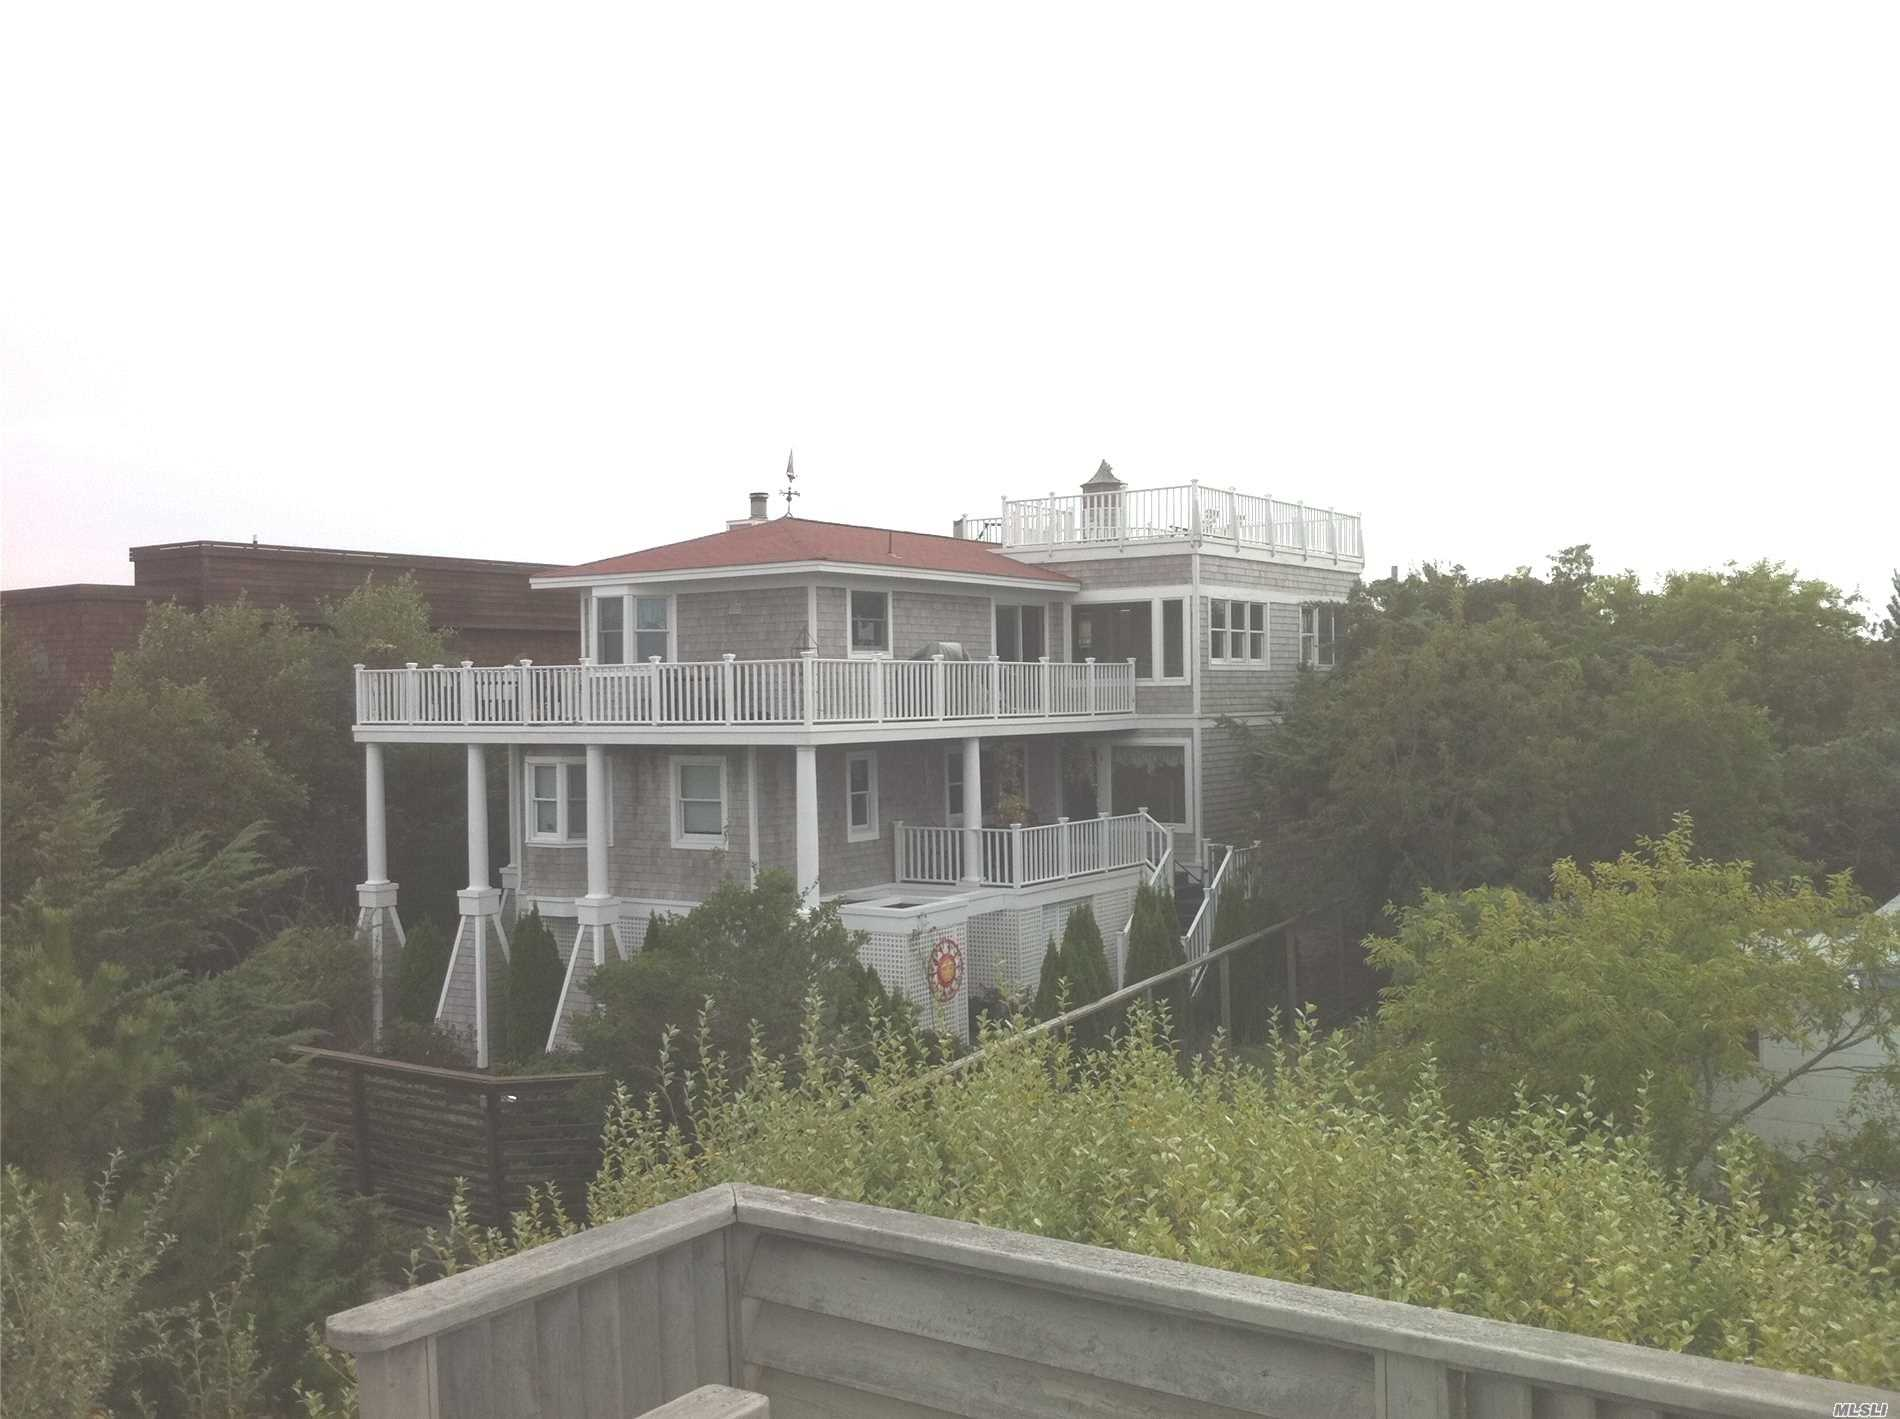 55 Midway Ave - Seaview, New York